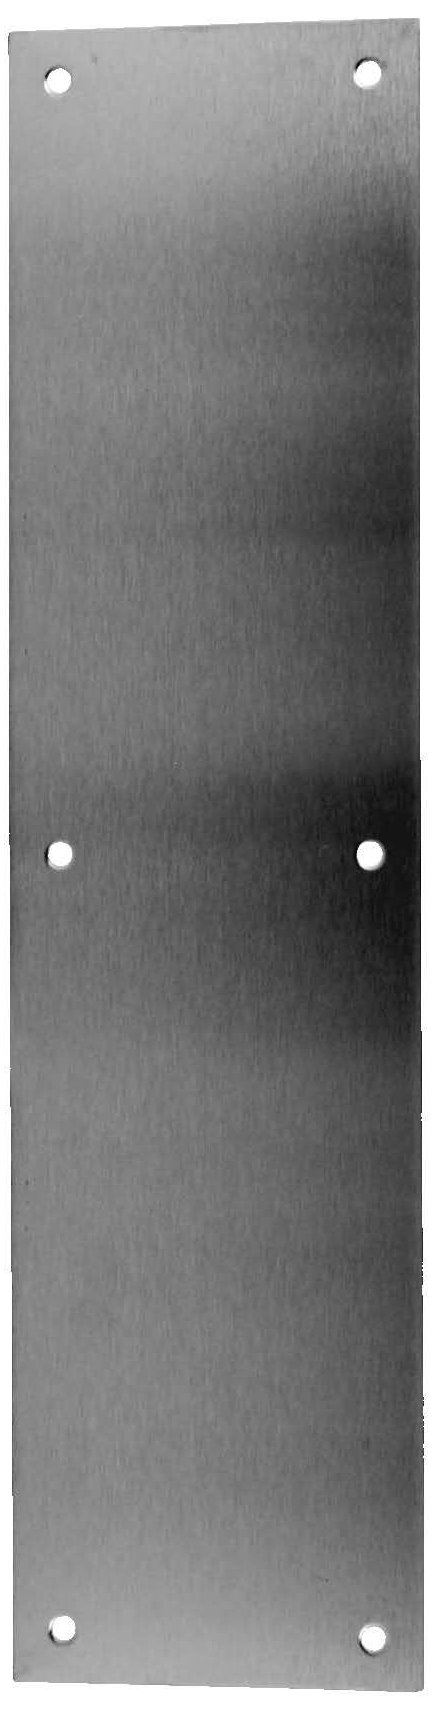 Don-Jo 72 Aluminum Four Beveled Edges Push Plate, Satin Anodized Aluminum Finish, 6'' Width x 16'' Height x 3/64'' Thick (Pack of 10)